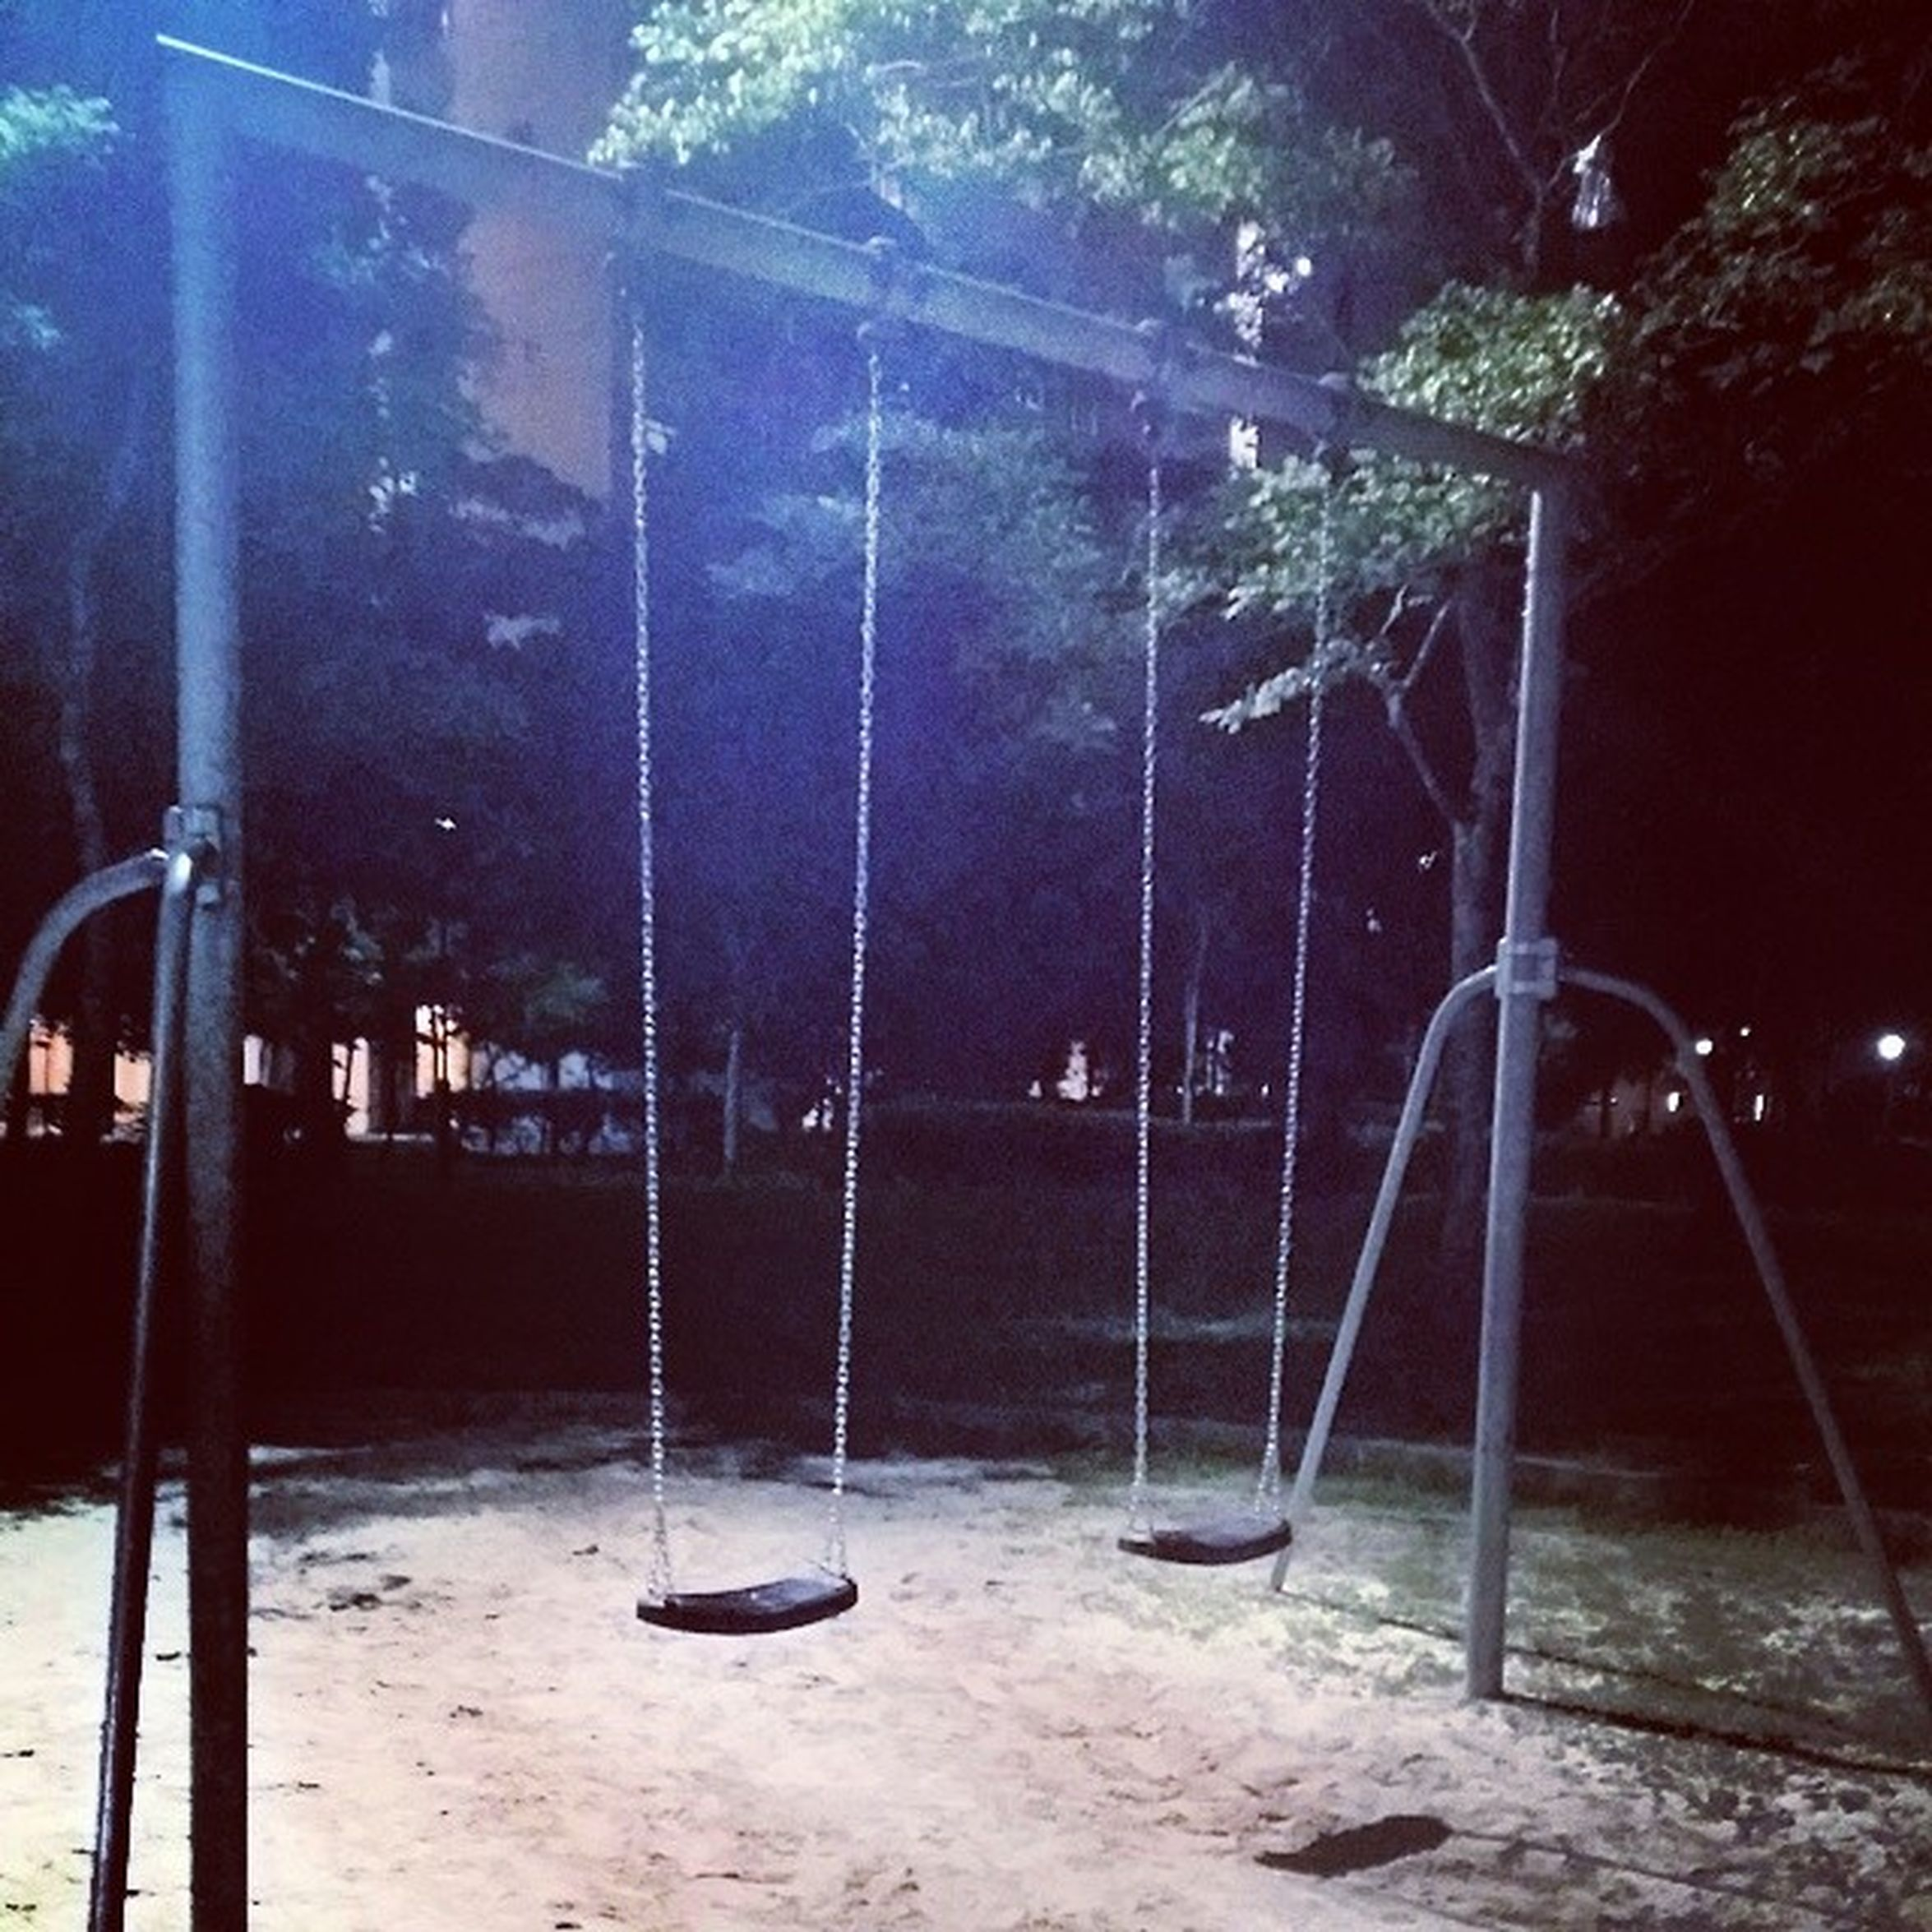 I found swings during my jog near home. HAPPINESS?